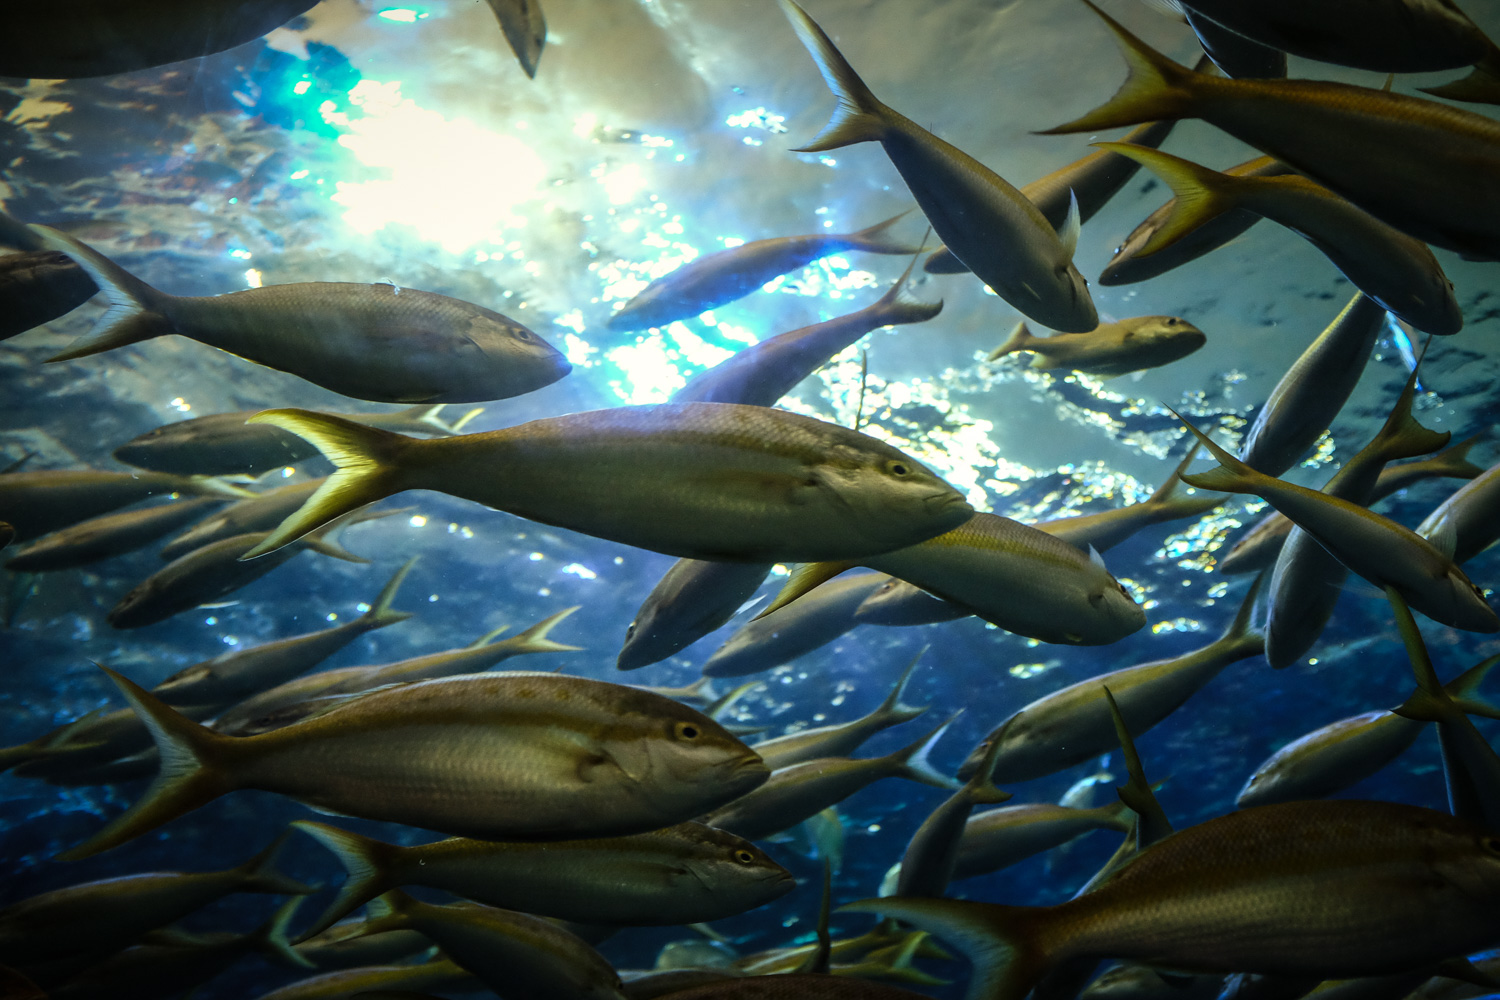 Close up of a backlit school of fish. How to Take Clear and Creative Photos at Aquariums